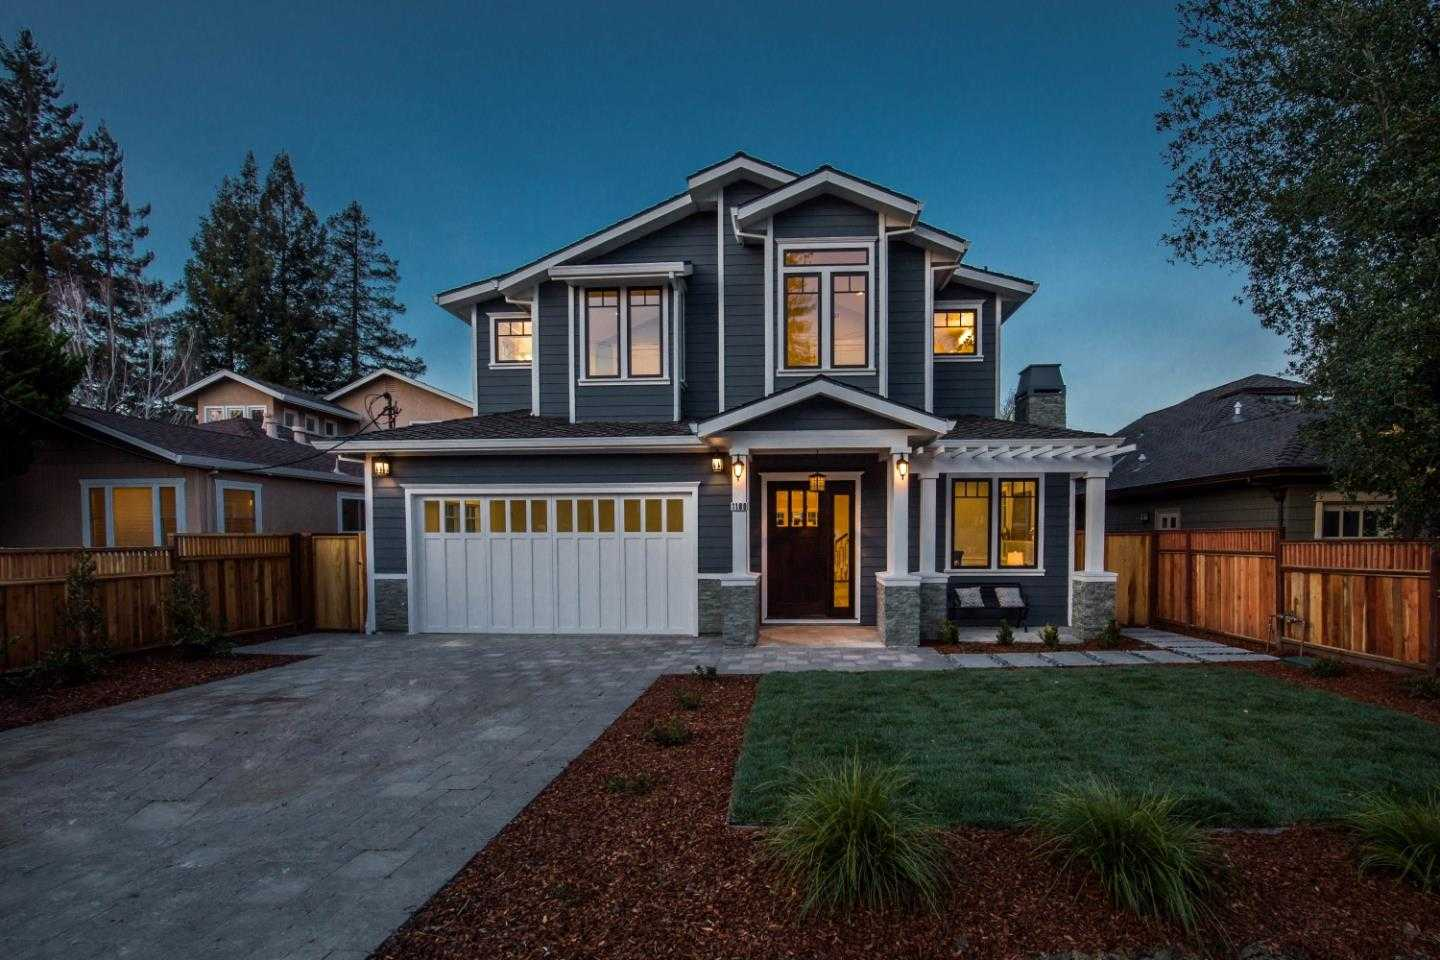 $4,688,000 - 5Br/5Ba -  for Sale in Menlo Park